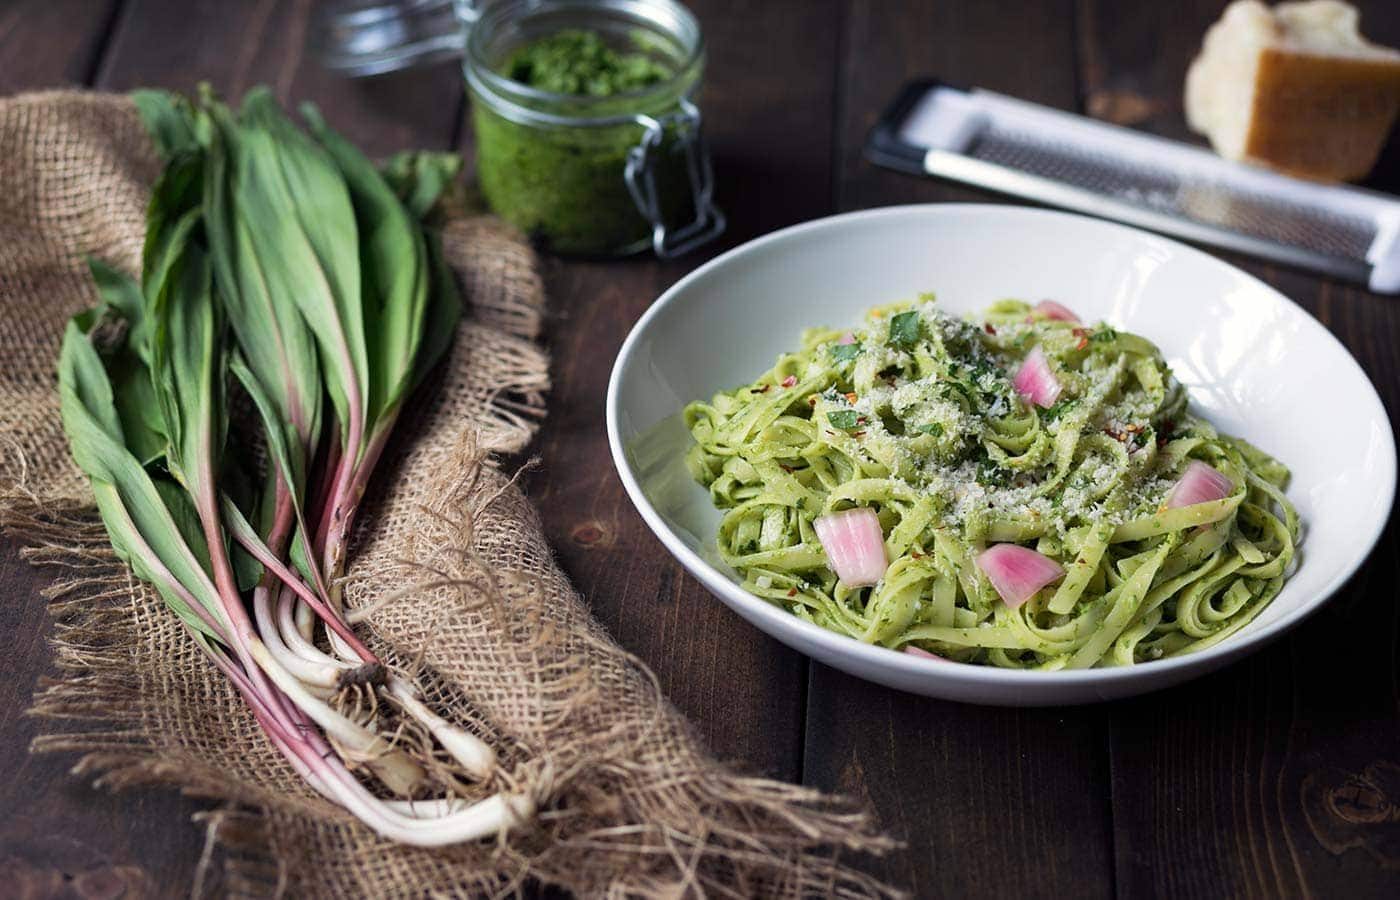 Ramp pesto pasta in a bowl